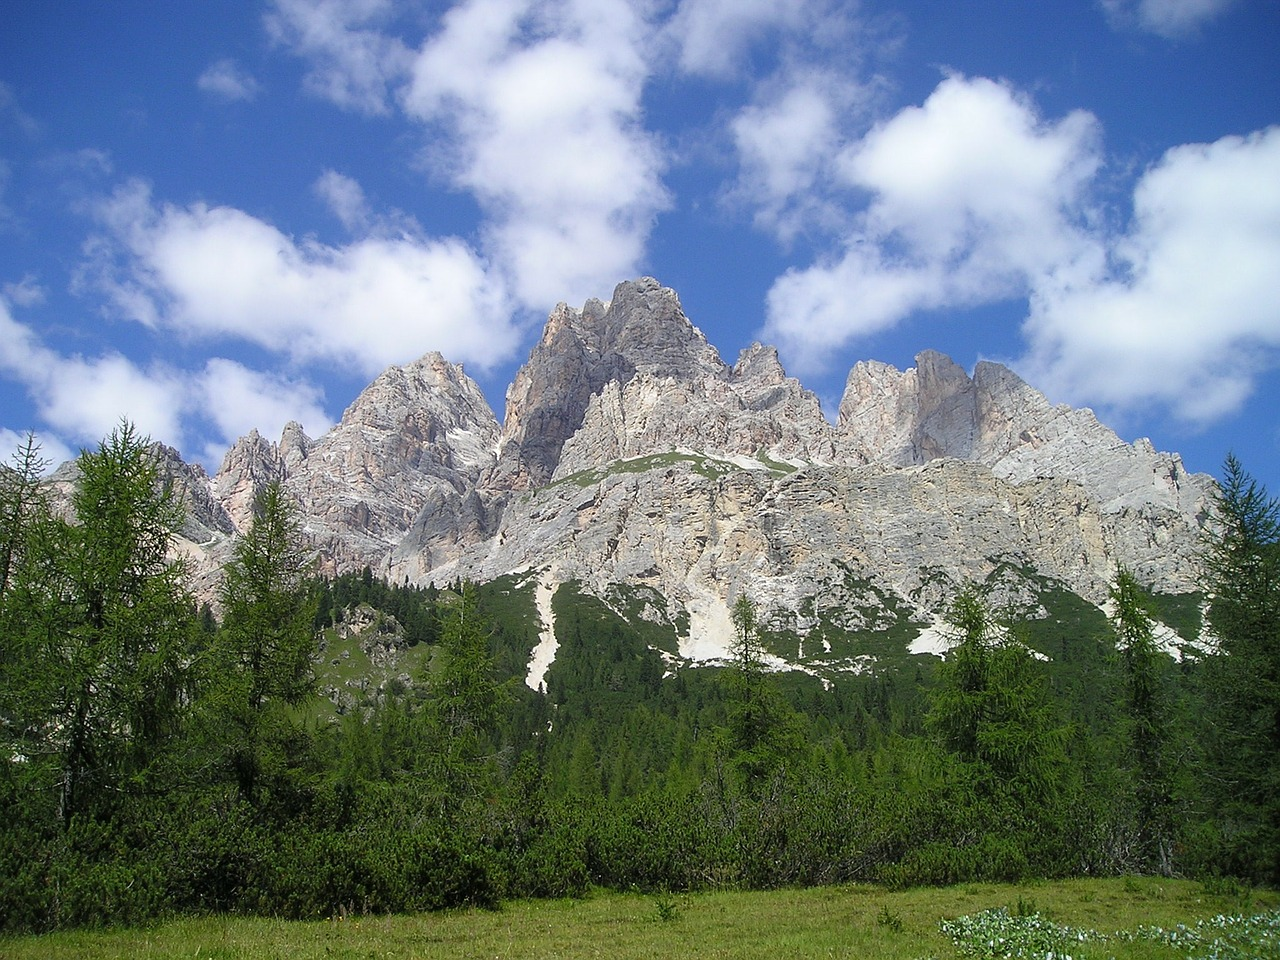 monte cristallo,cristallogruppe,crystal mountain,dolomites,mountains,alpine,south tyrol,italy,forest,summer,free pictures, free photos, free images, royalty free, free illustrations, public domain